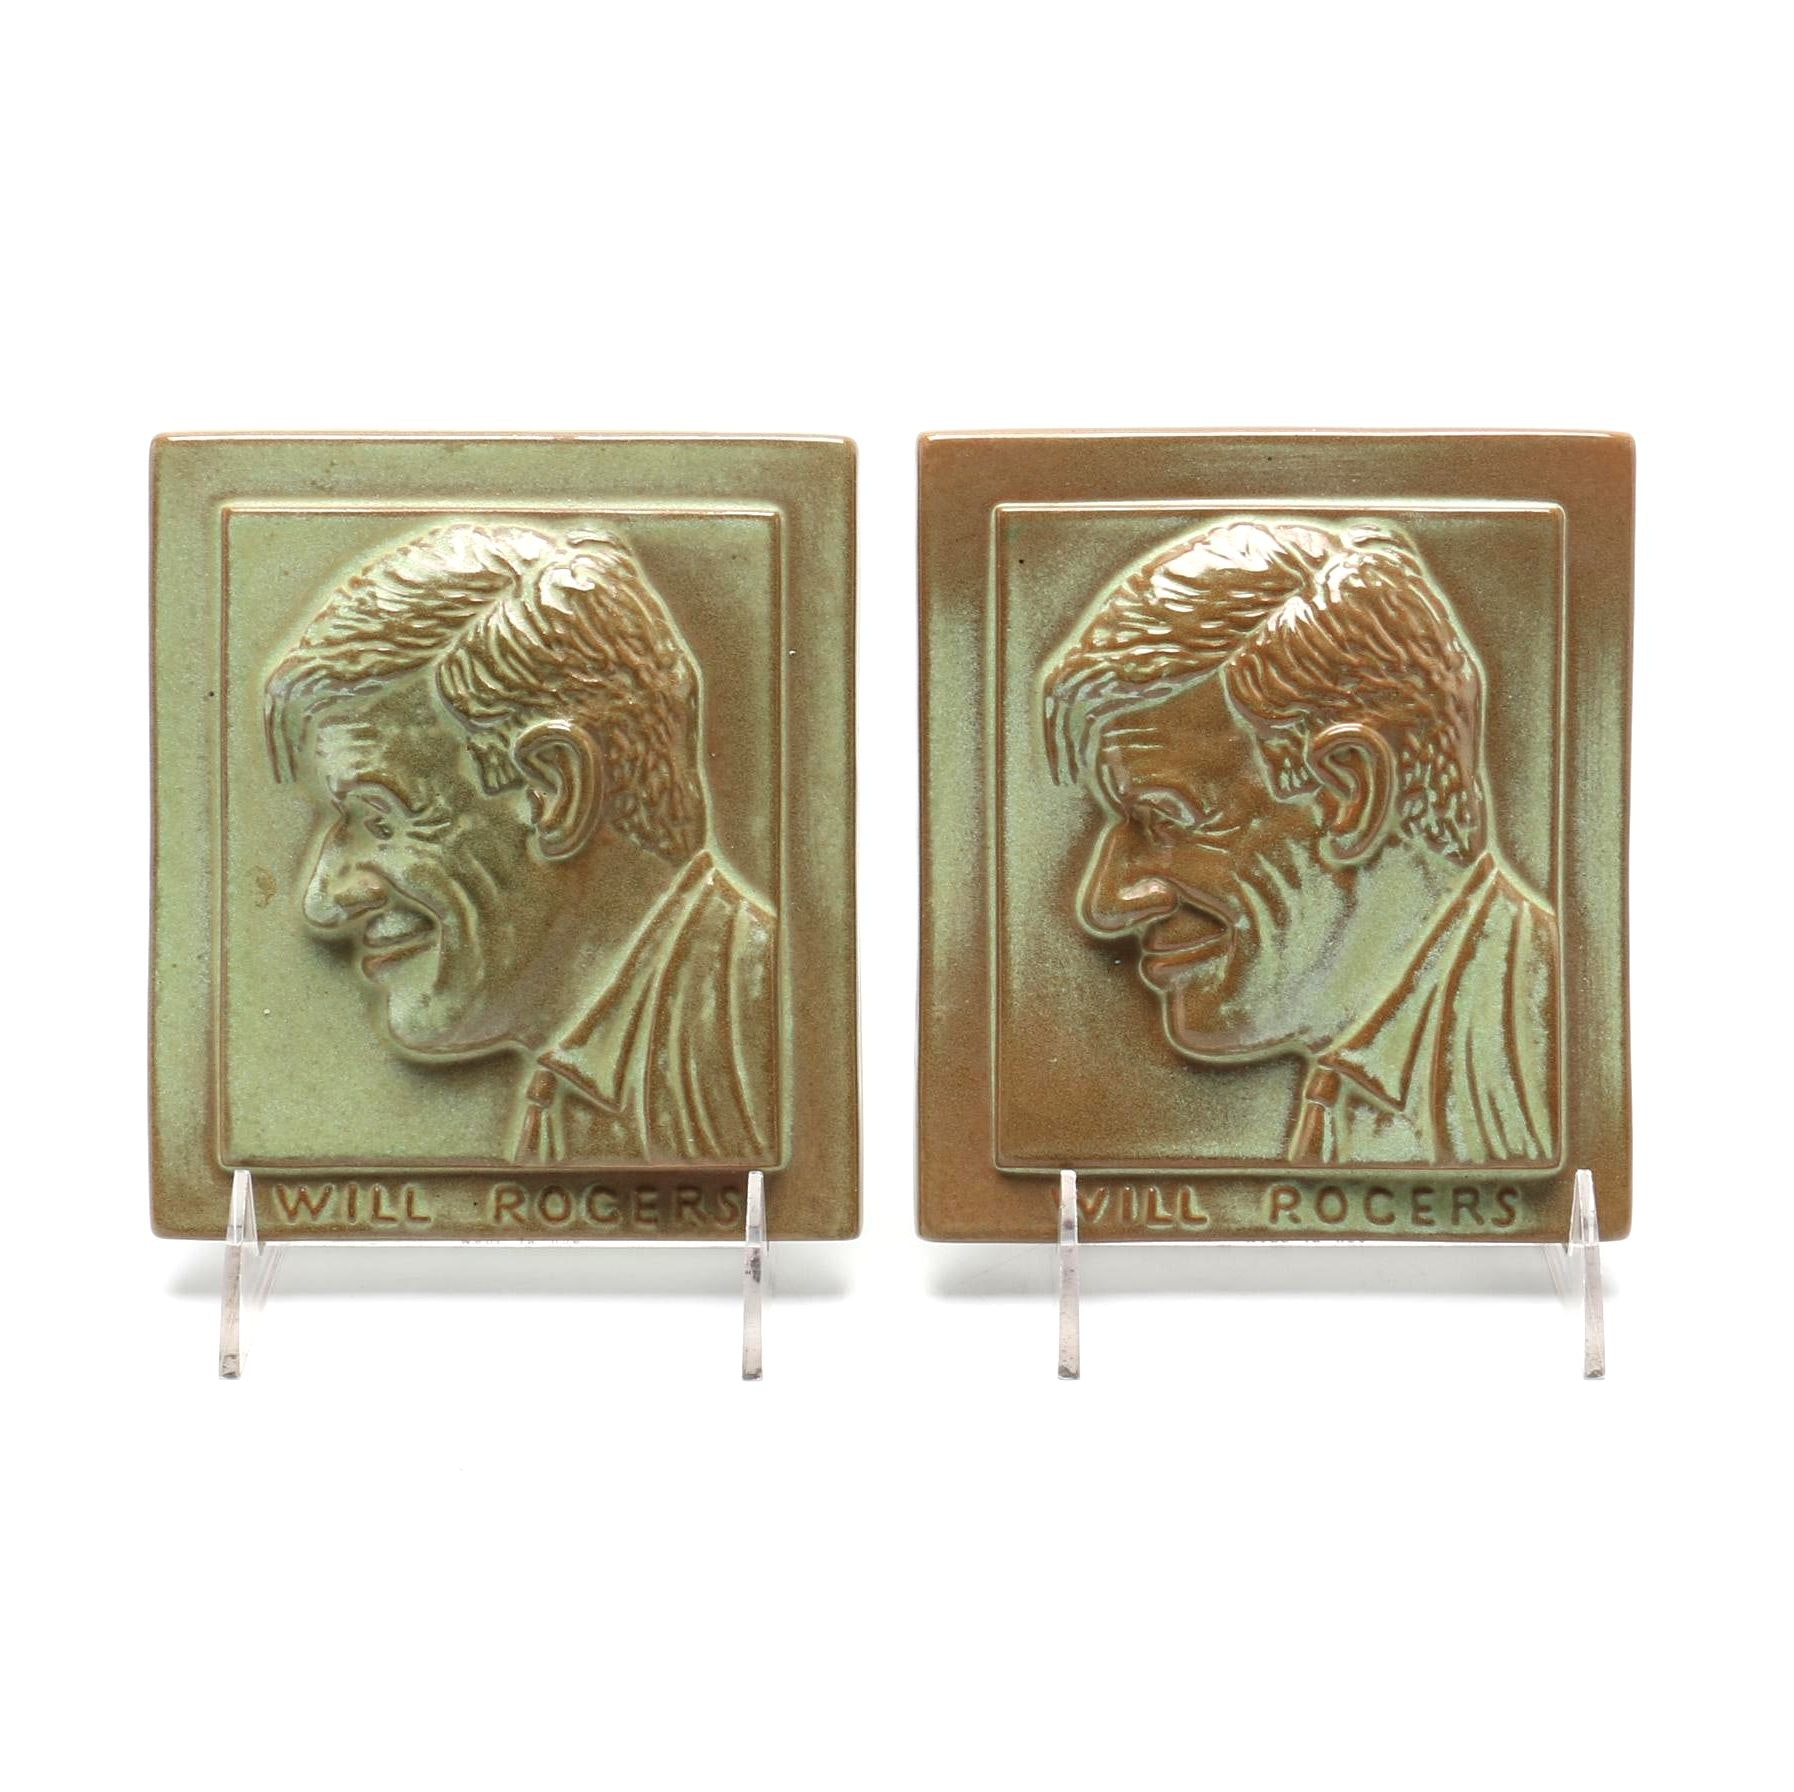 Circa 1935 Frankoma Will Rogers Tile Plaques